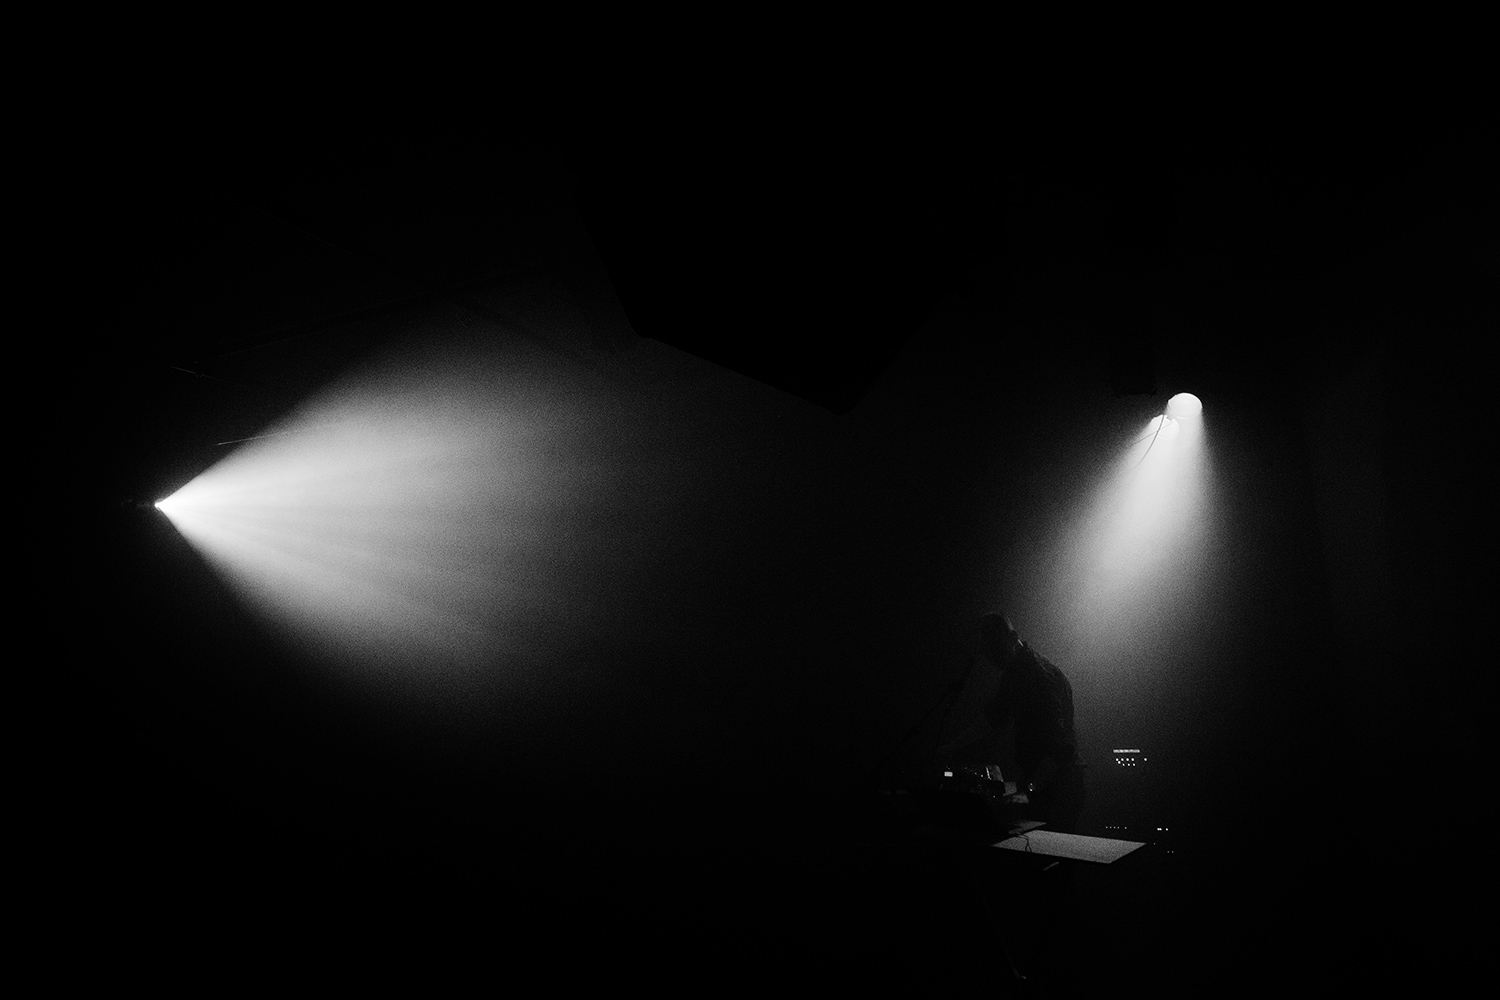 Run Dust (Luke Calzonetti) by Laurent Orseau - SMOG - Les Ateliers Claus - Brussels, Belgium #1